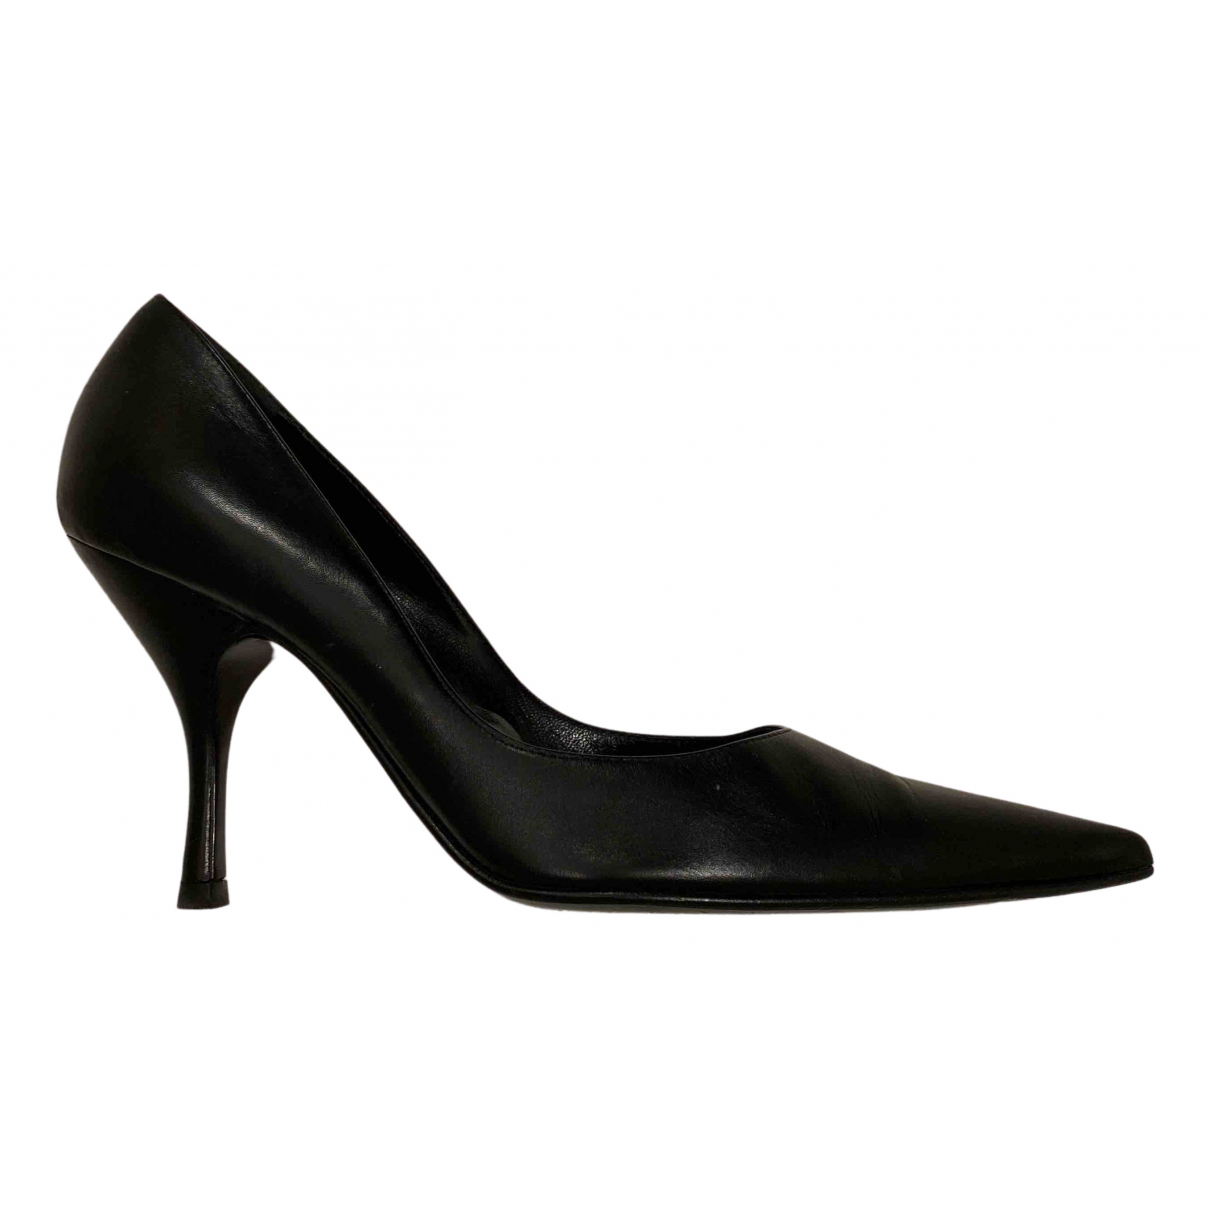 Sergio Rossi N Black Leather Heels for Women 39.5 EU